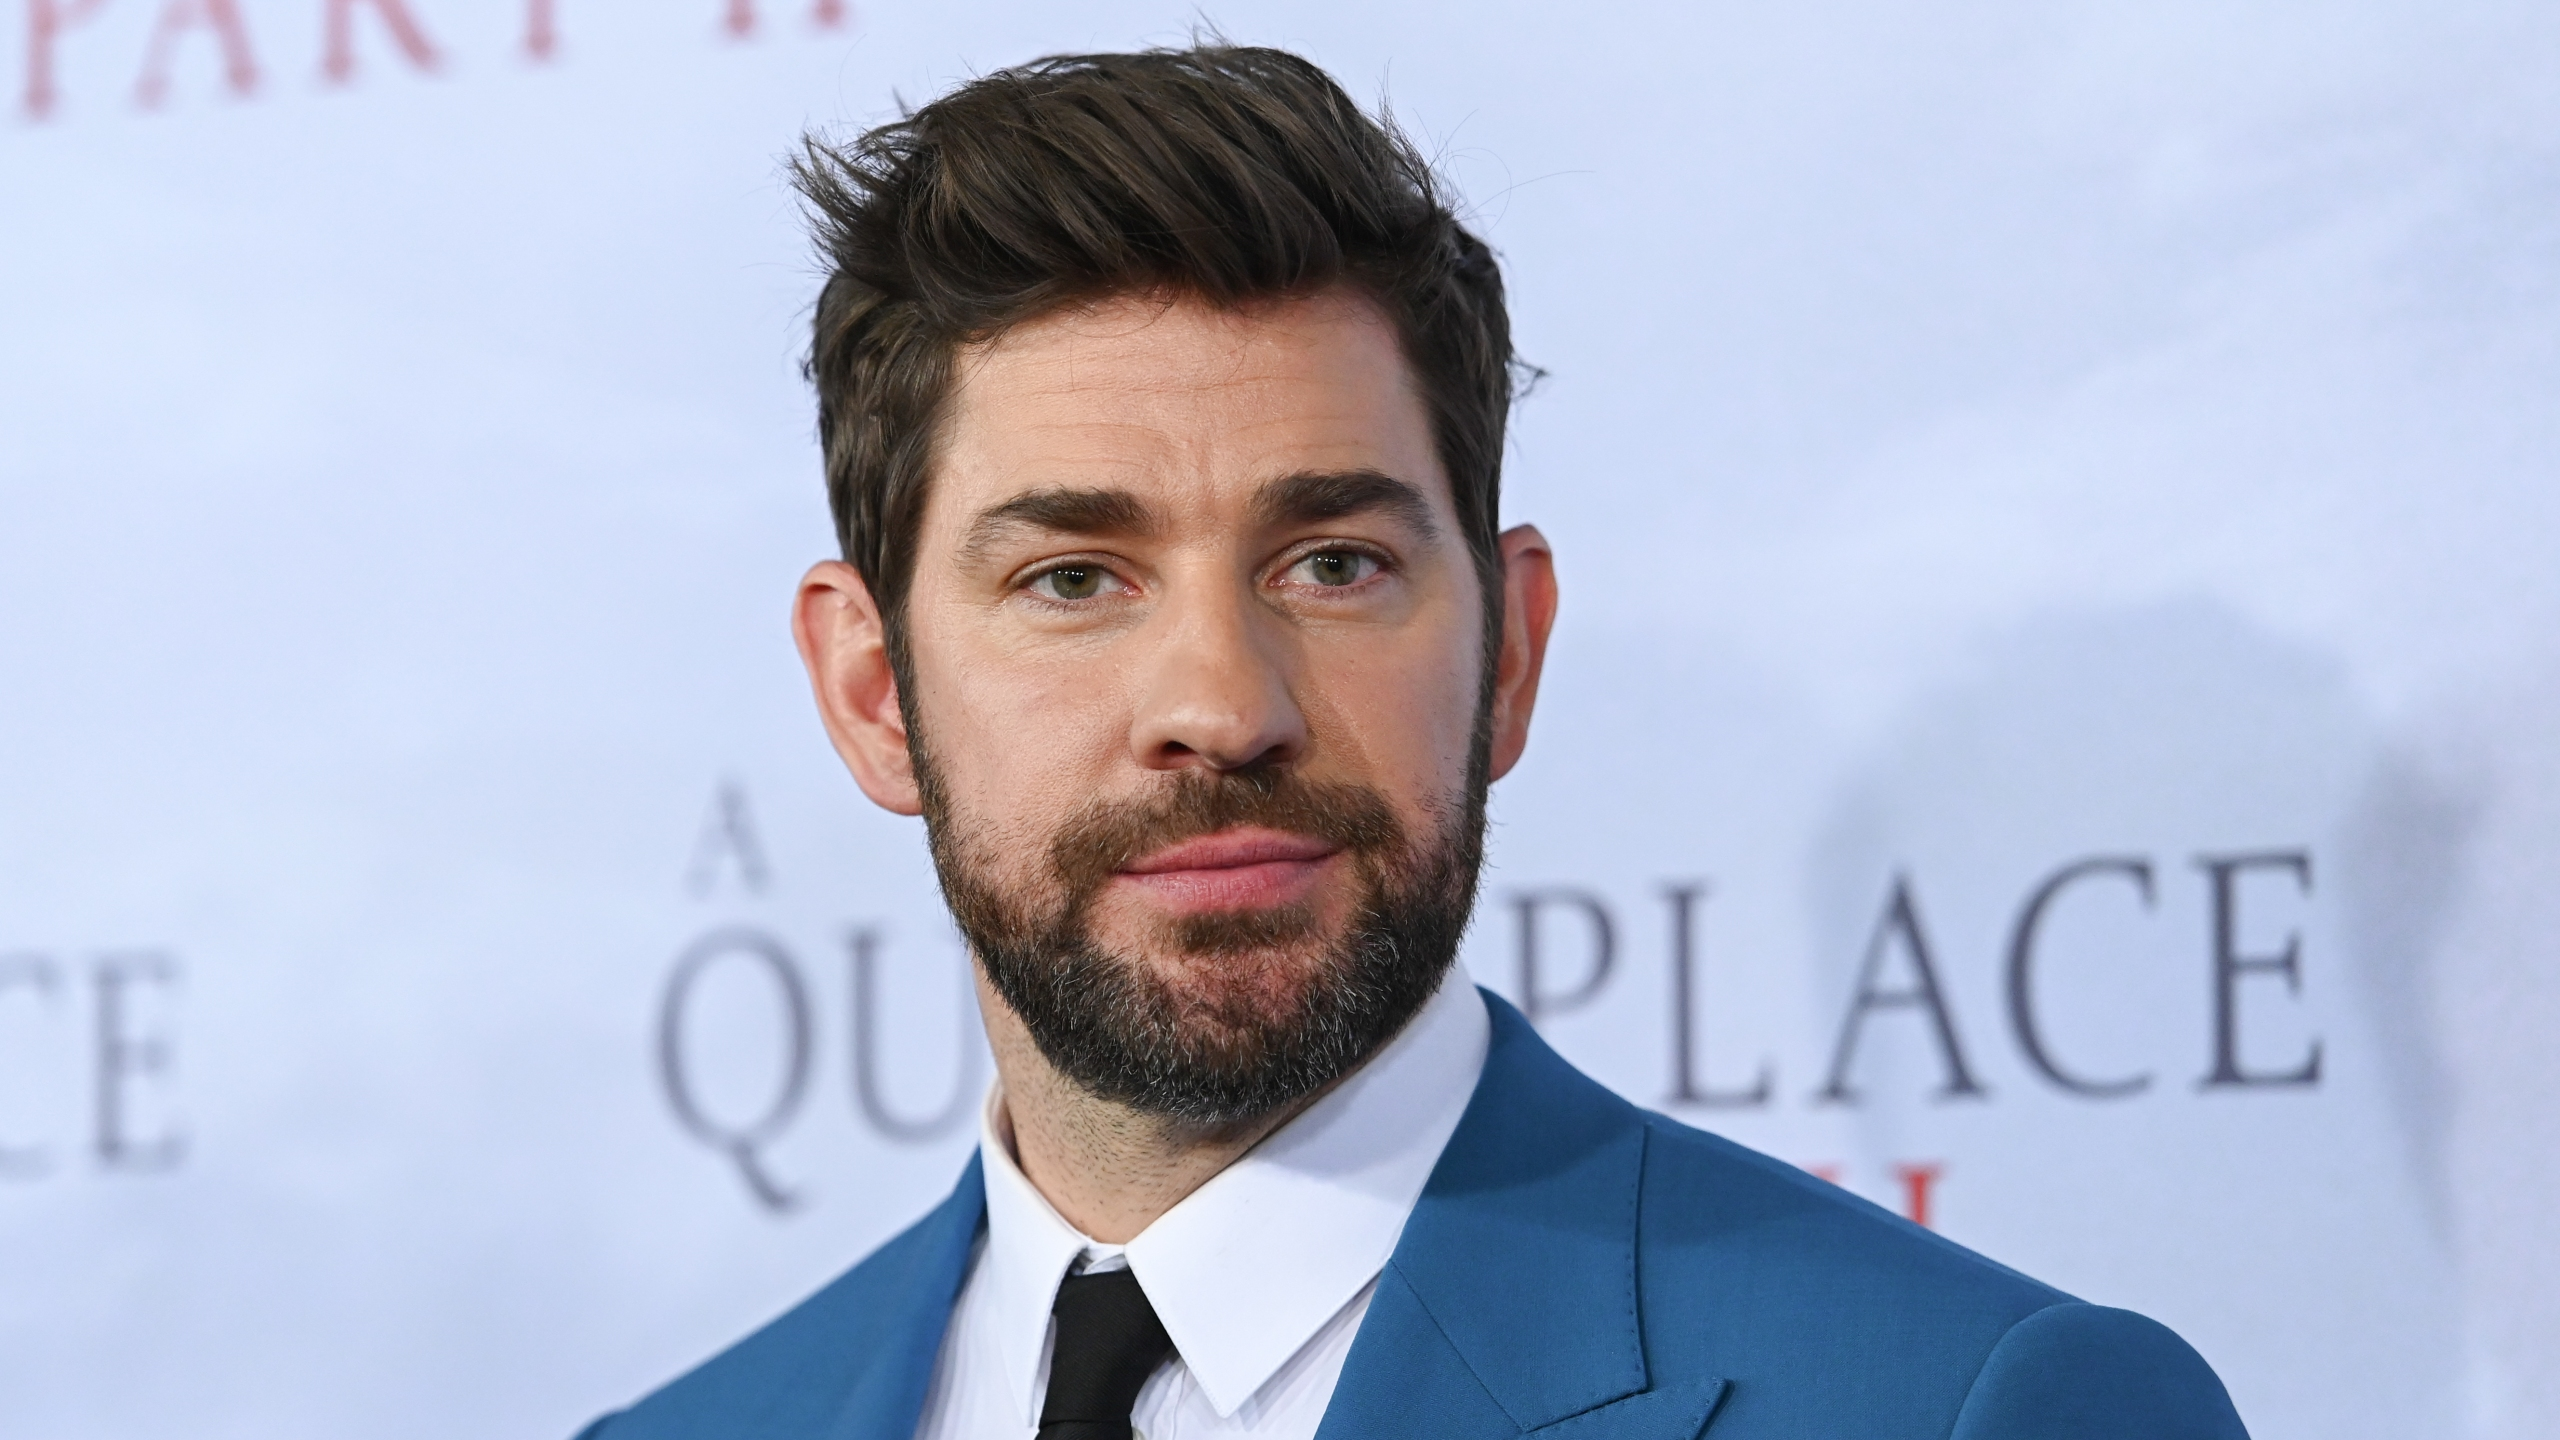 """Actor John Krasinski attends the """"A Quiet Place Part II"""" World Premiere at Rose Theater, Jazz at Lincoln Center on March 08, 2020 in New York City. (Mike Coppola/Getty Images)"""